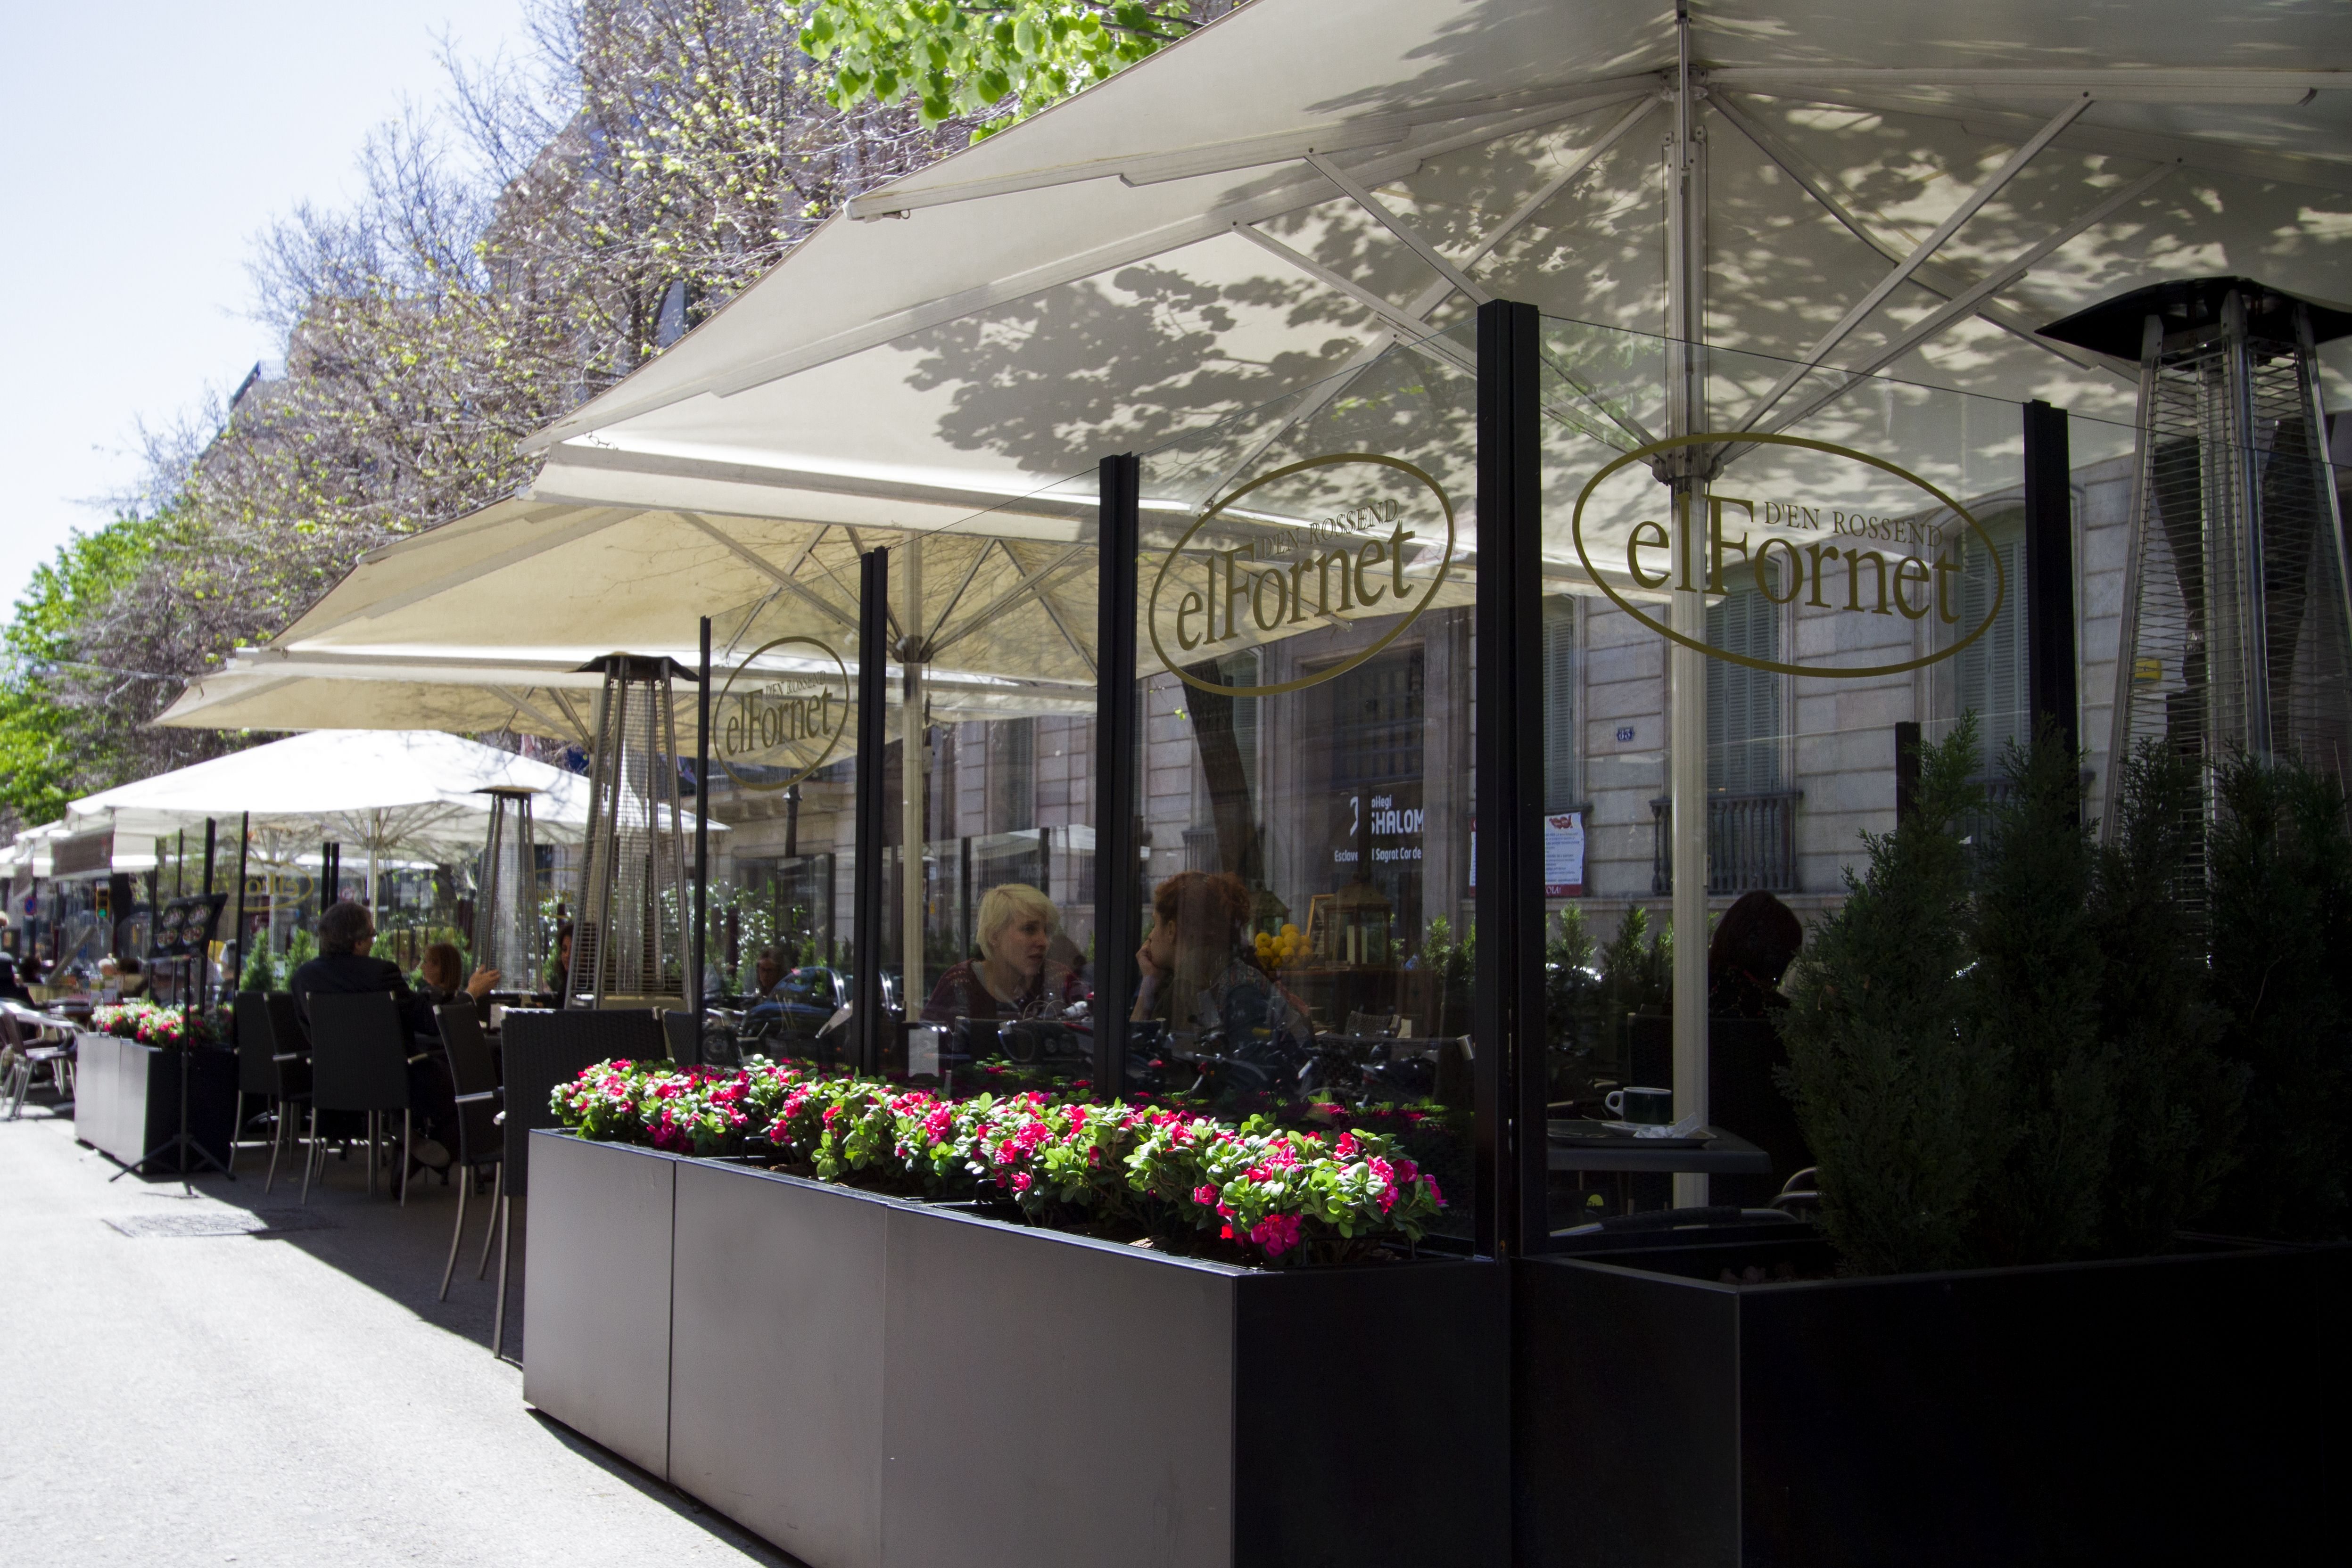 If You Want A Tasty Coffe In Barcelona Visit Our Central Terrace Very Close To Plaza Catalunya Roof Garden Terrace Views